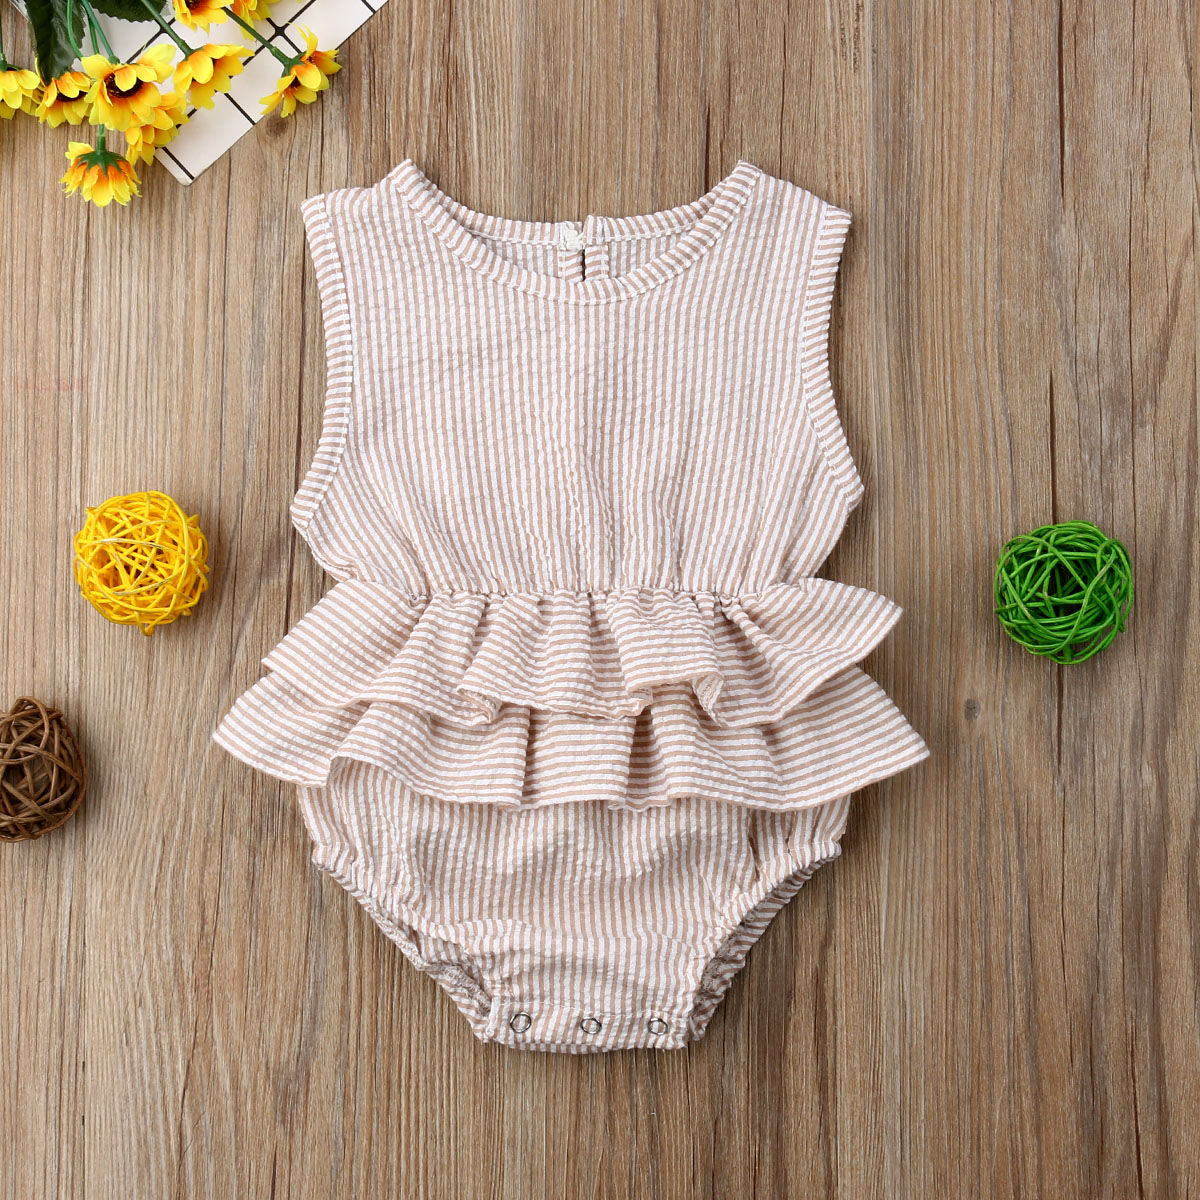 Newborn Kids Baby Girls Clothes Sleeveless   Romper   Cotton Linen   Rompers   Outfit Summer